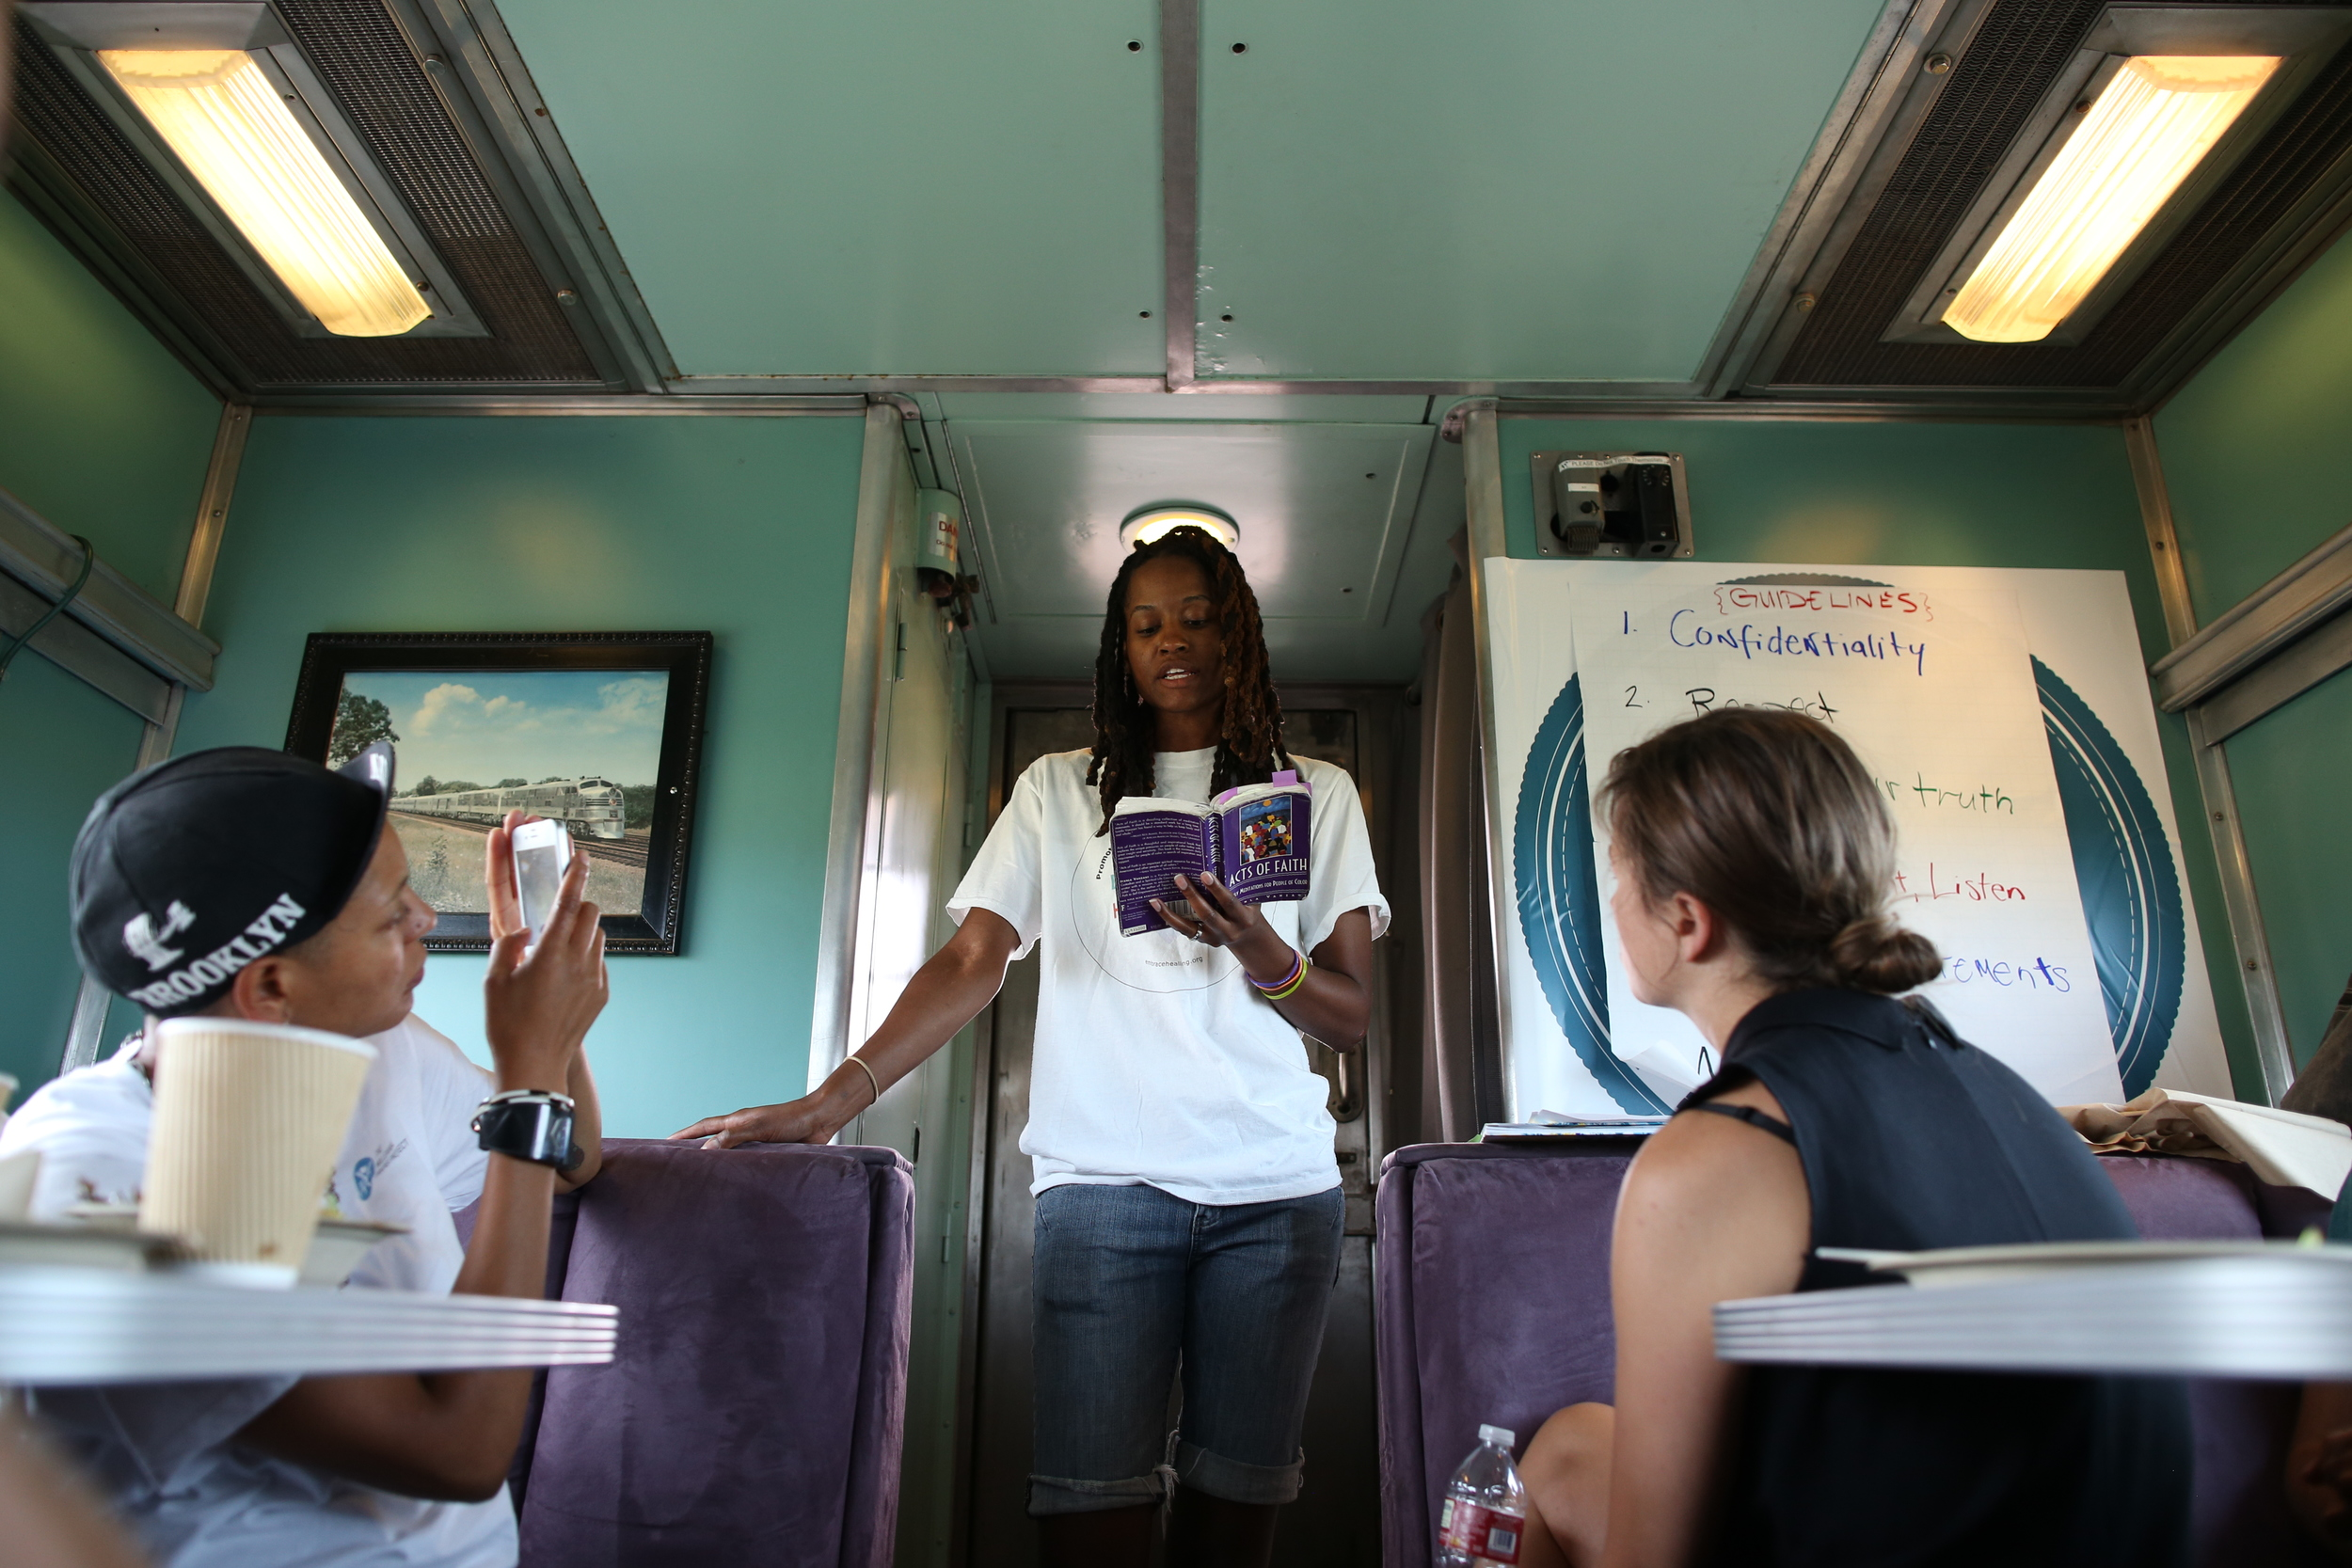 8/11/14  | While on the train, our community was shaken by the news of Michael Brown's shooting in Ferguson, MO. MTP participant Acasia Olson, whose project focused on racial healing, led our community in a challenging but important conversation about race in America. (Credit: Tyler Metcalfe, National Geographic Travel)